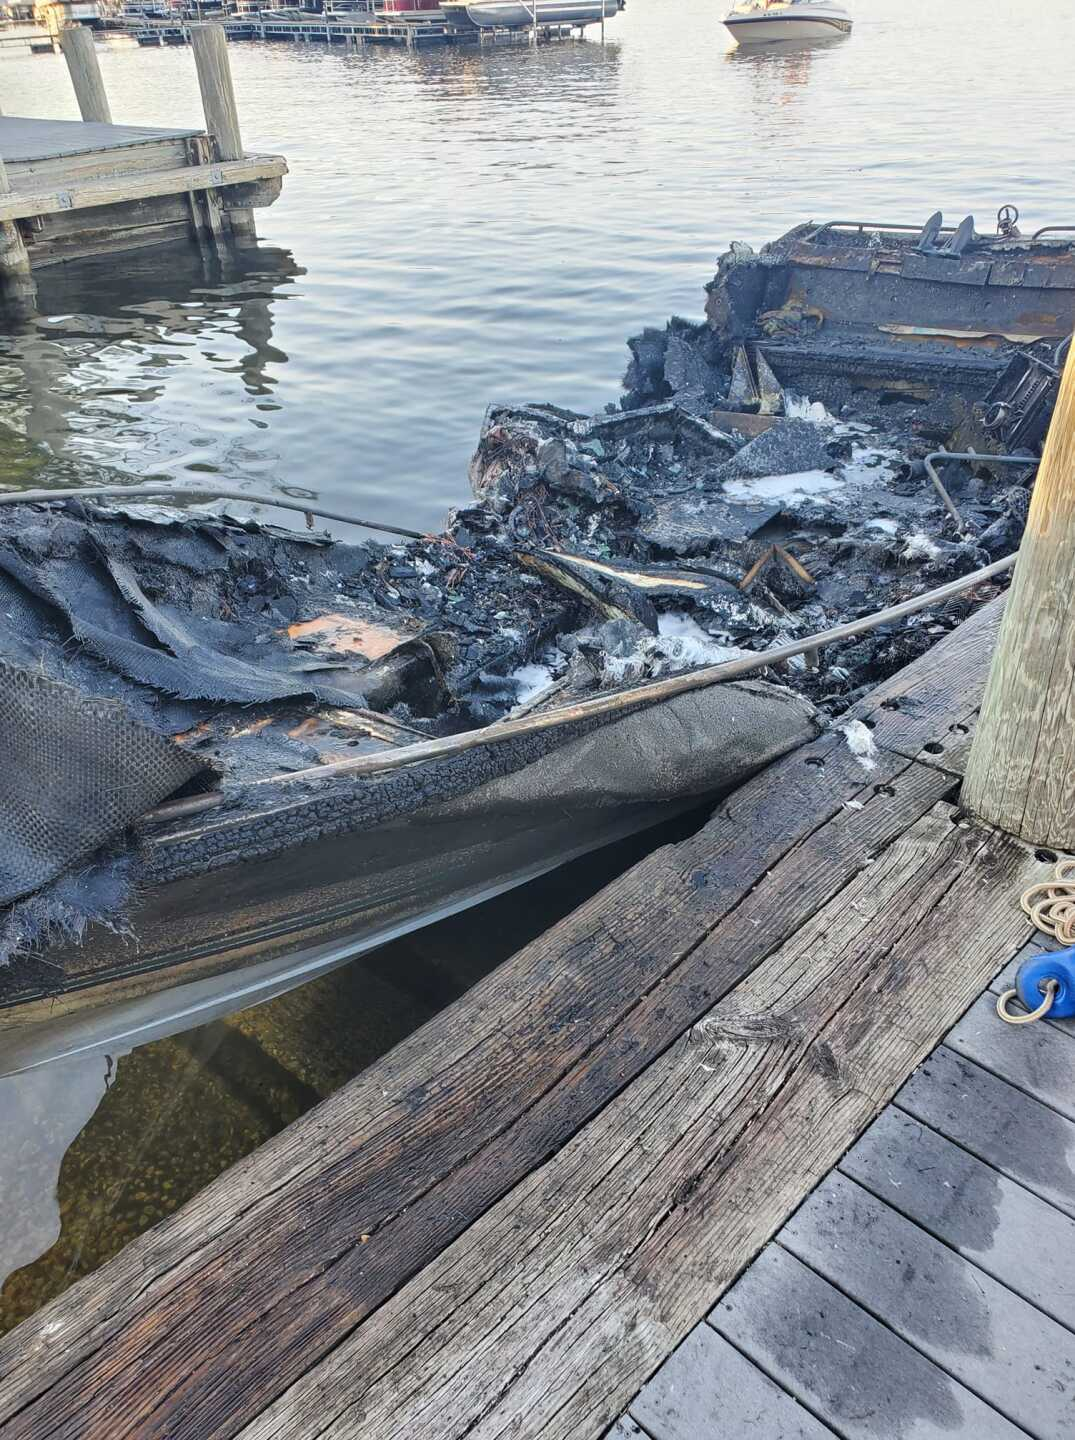 The remains of a boat that caught fire on Pewaukee Lake Saturday evening. (Photo credit: Kim Schemehorn)